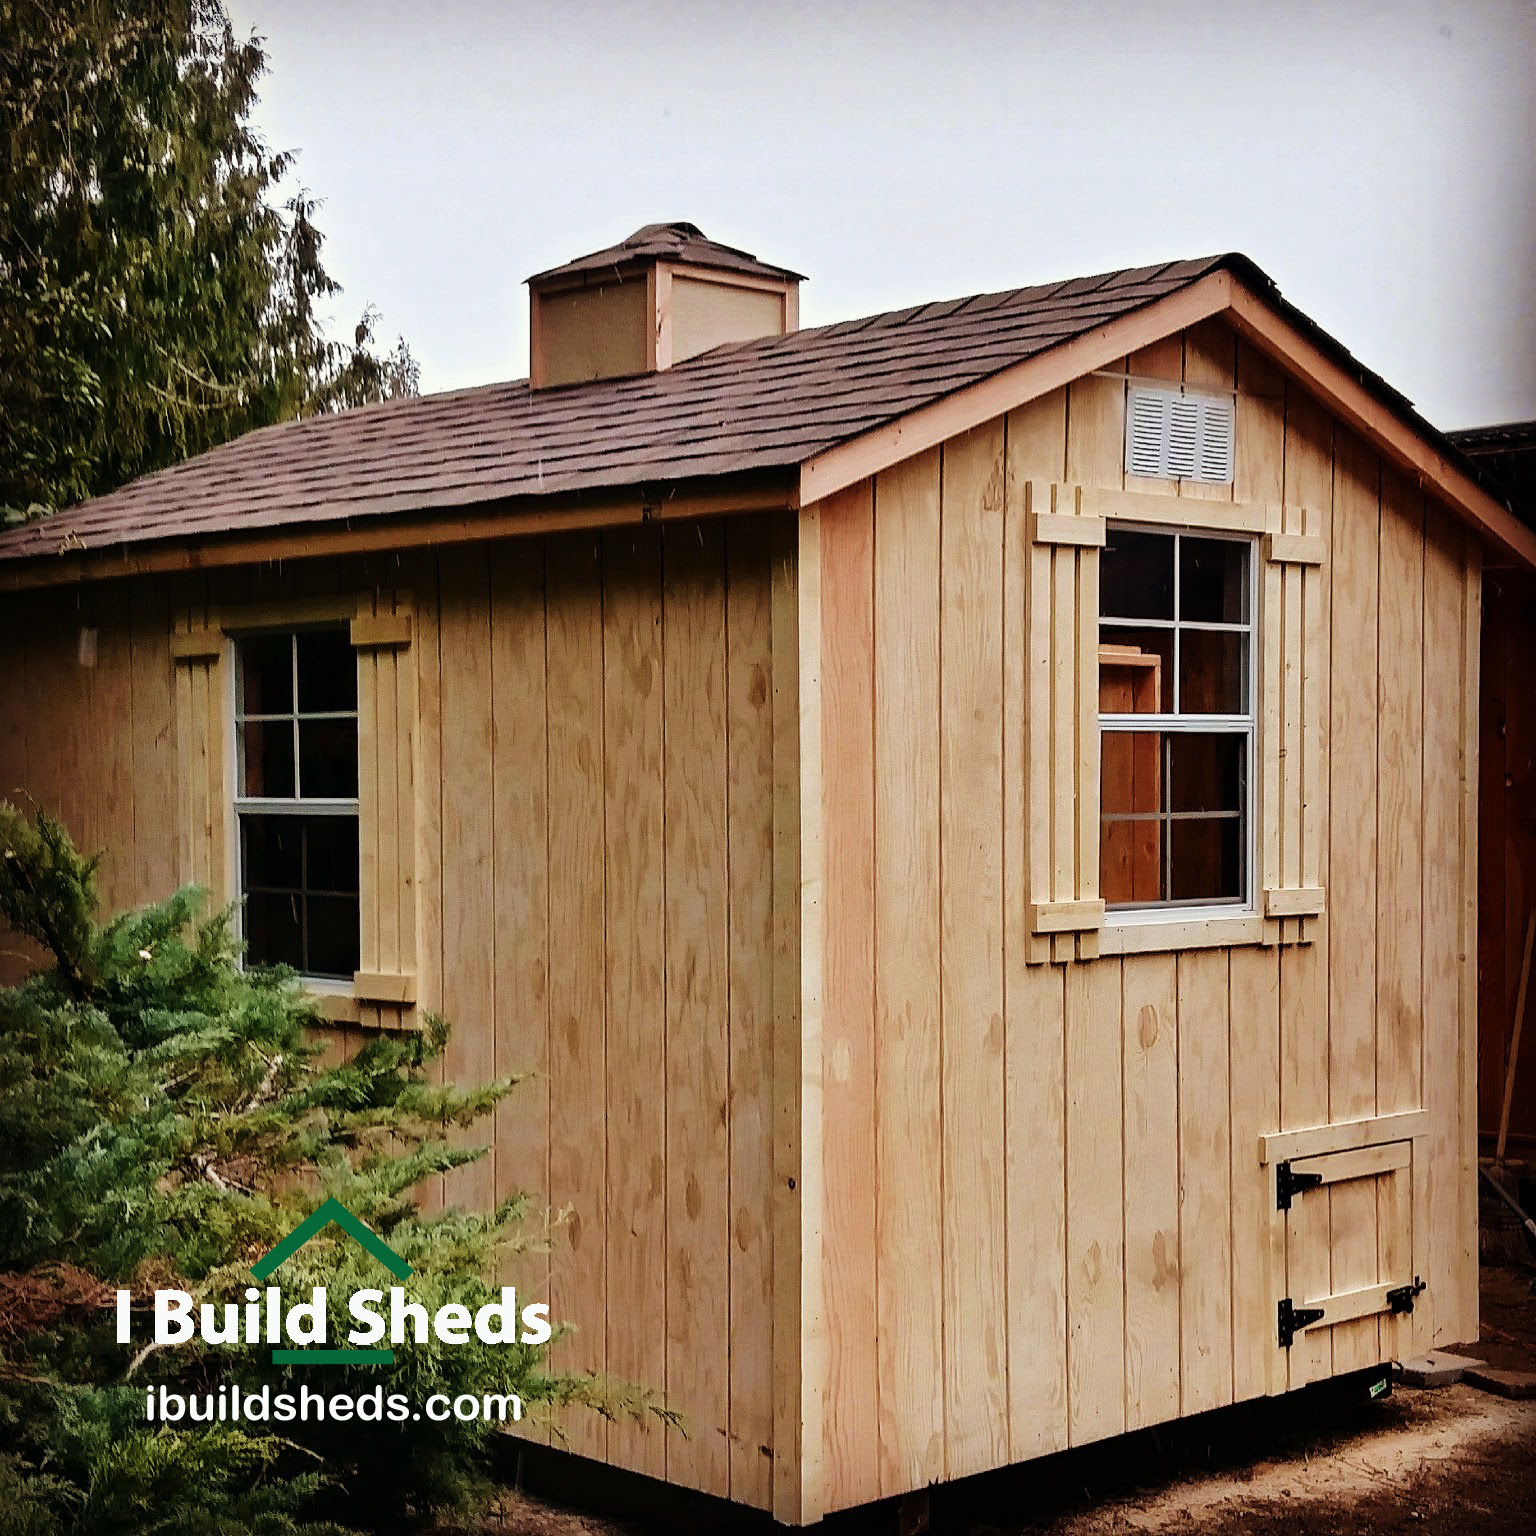 Classic Gable Buildings I Build Sheds